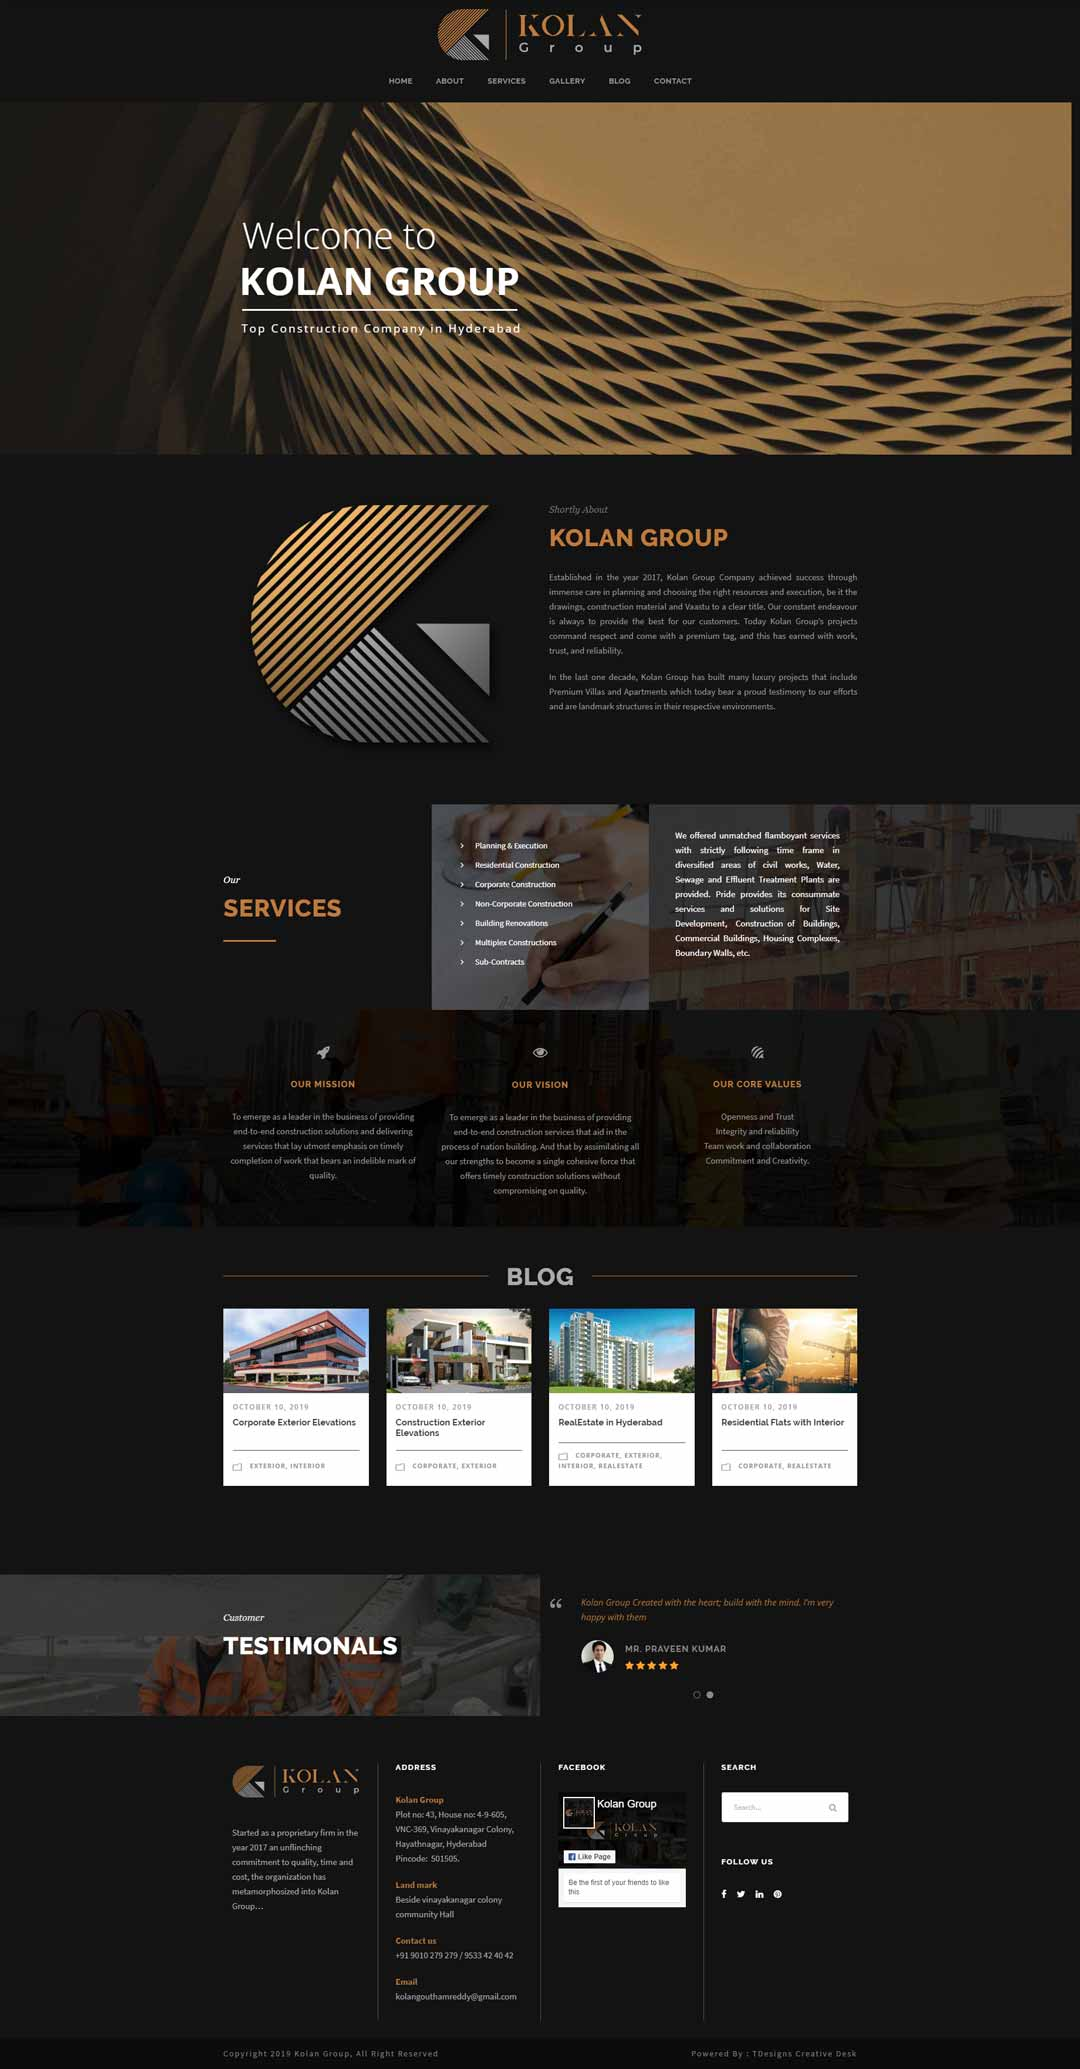 Kolan group website design